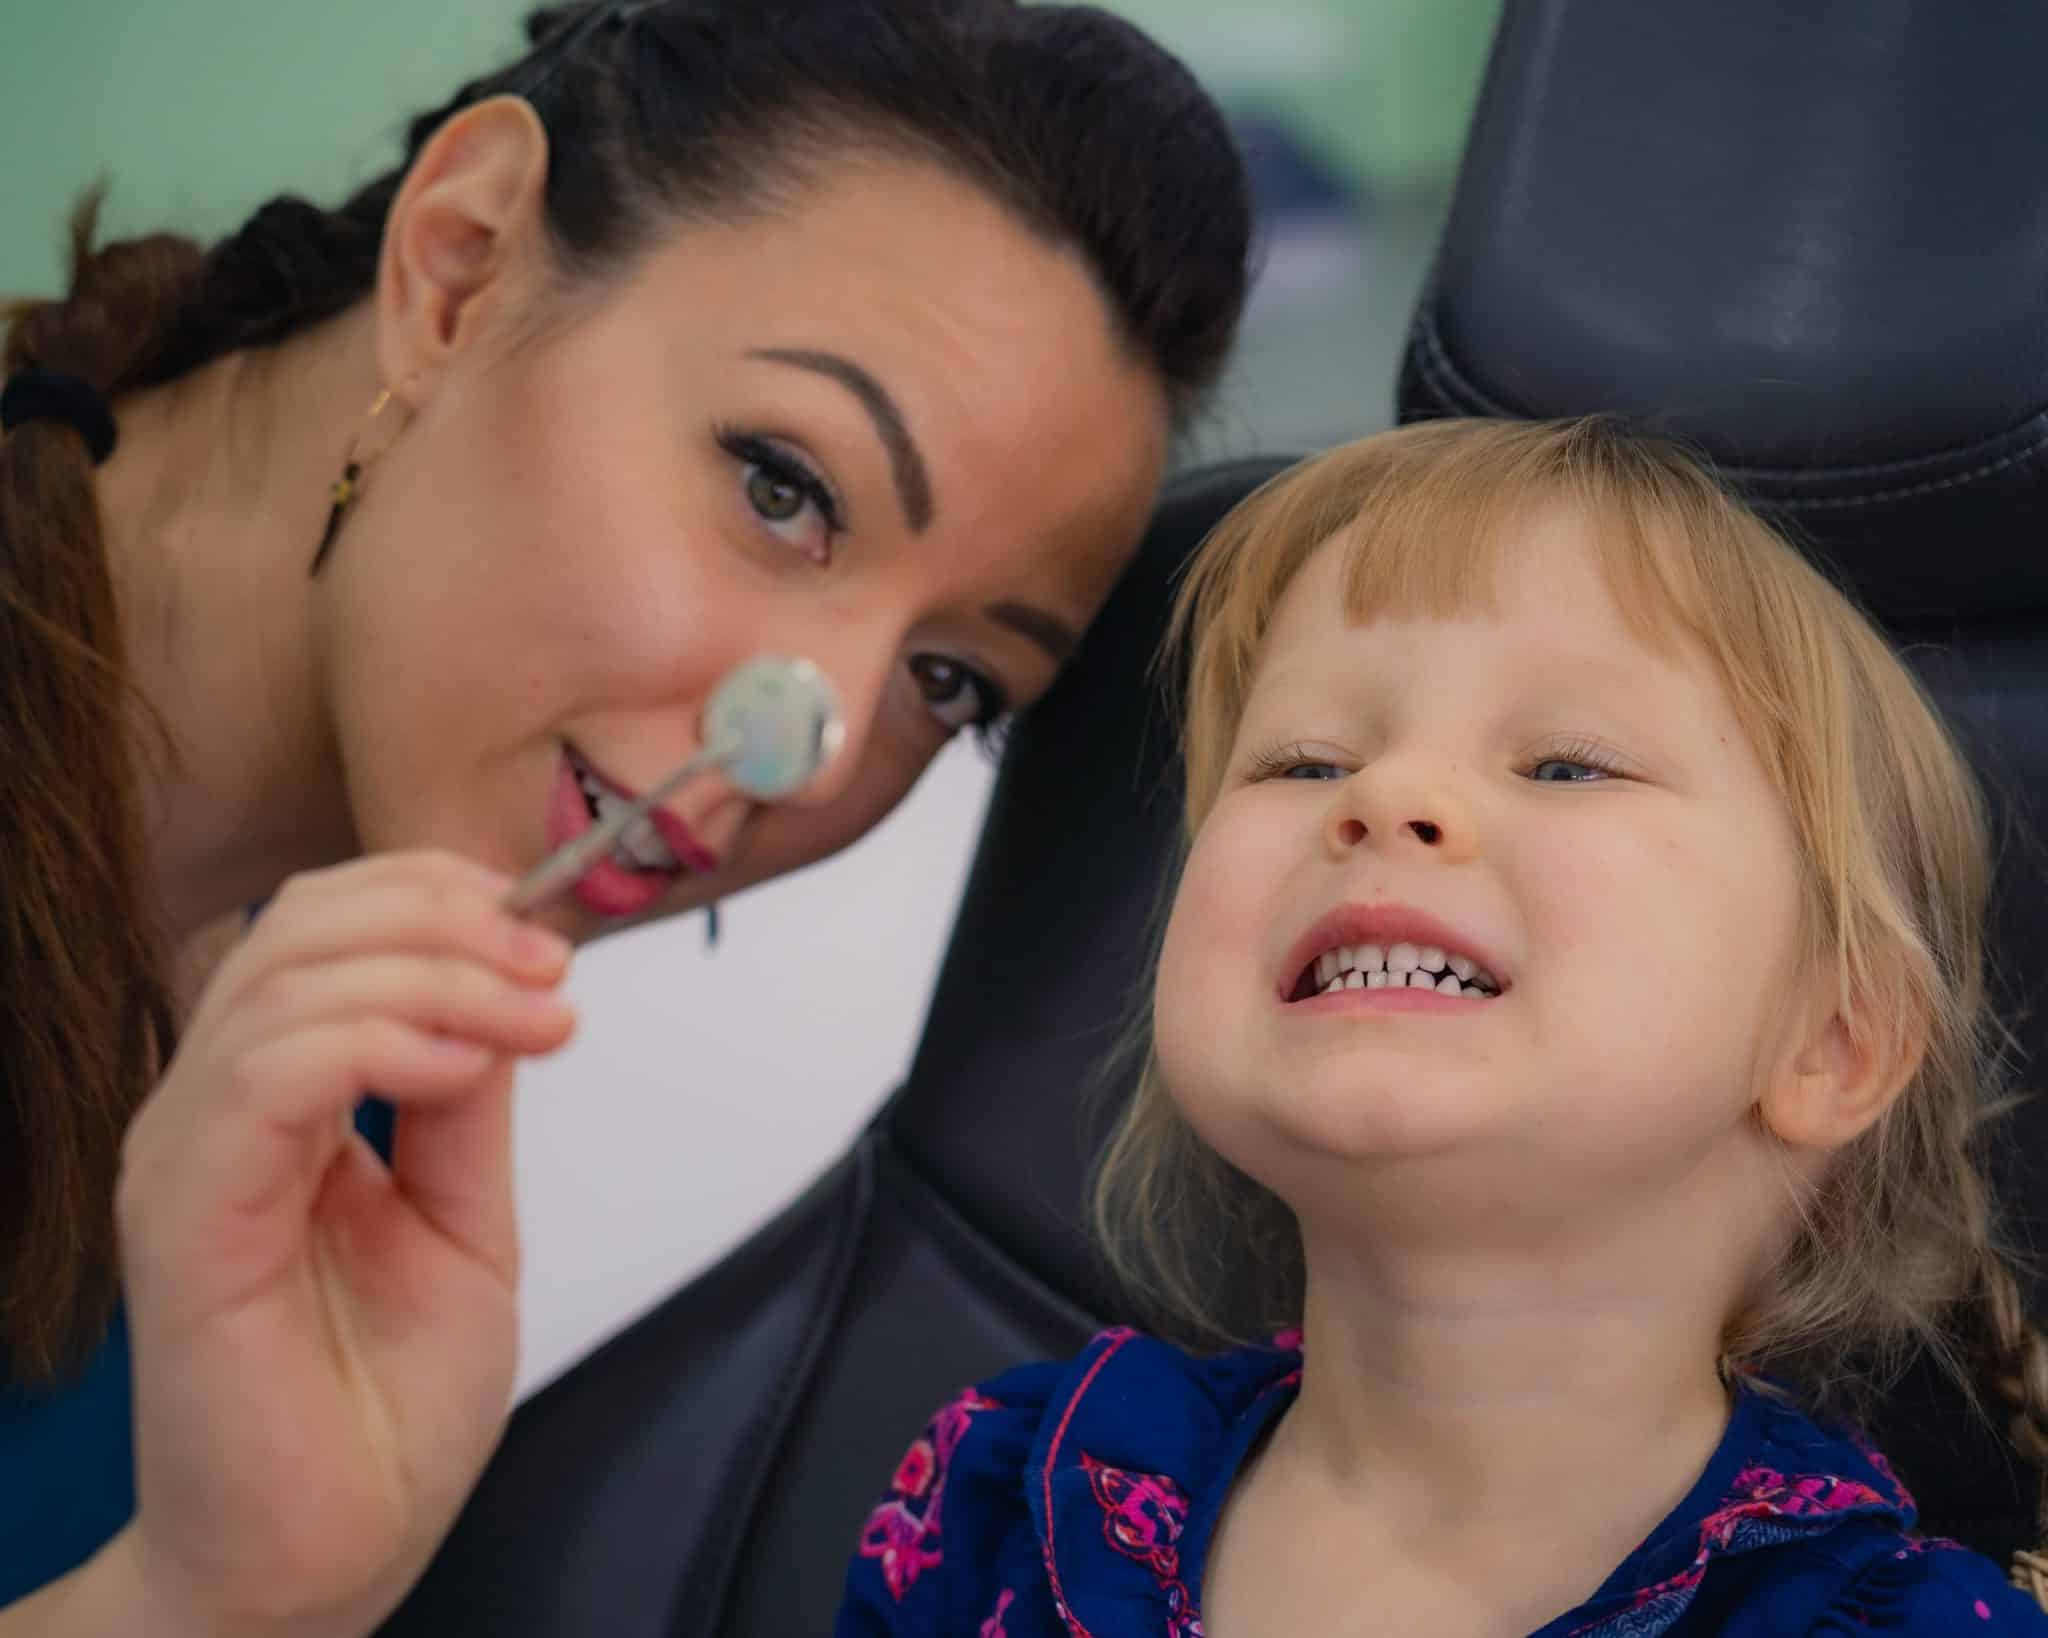 Dentist and a smiling child